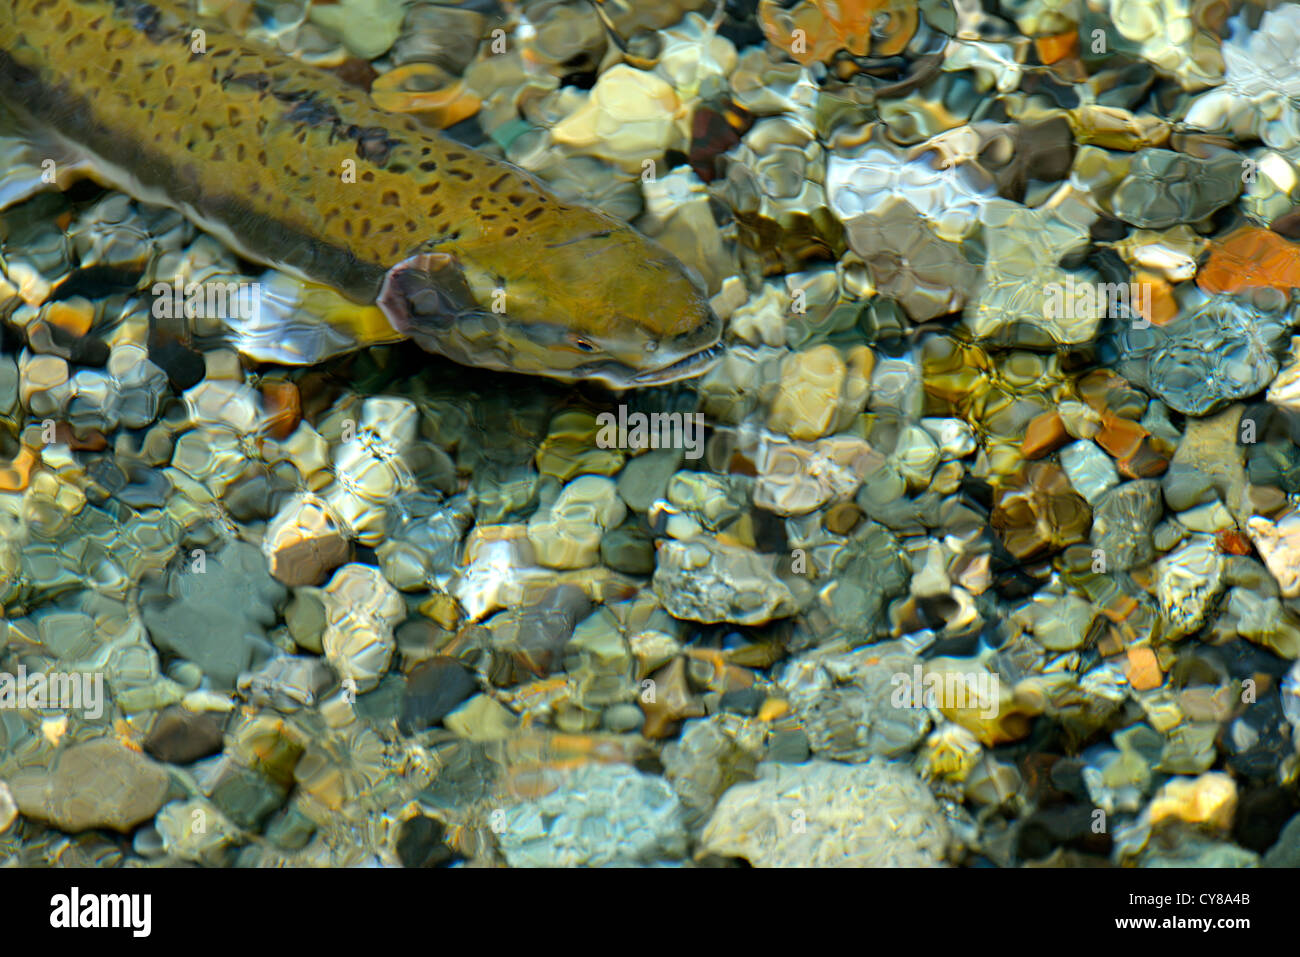 A close up image of a chum salmon swimming on a spawning bed - Stock Image